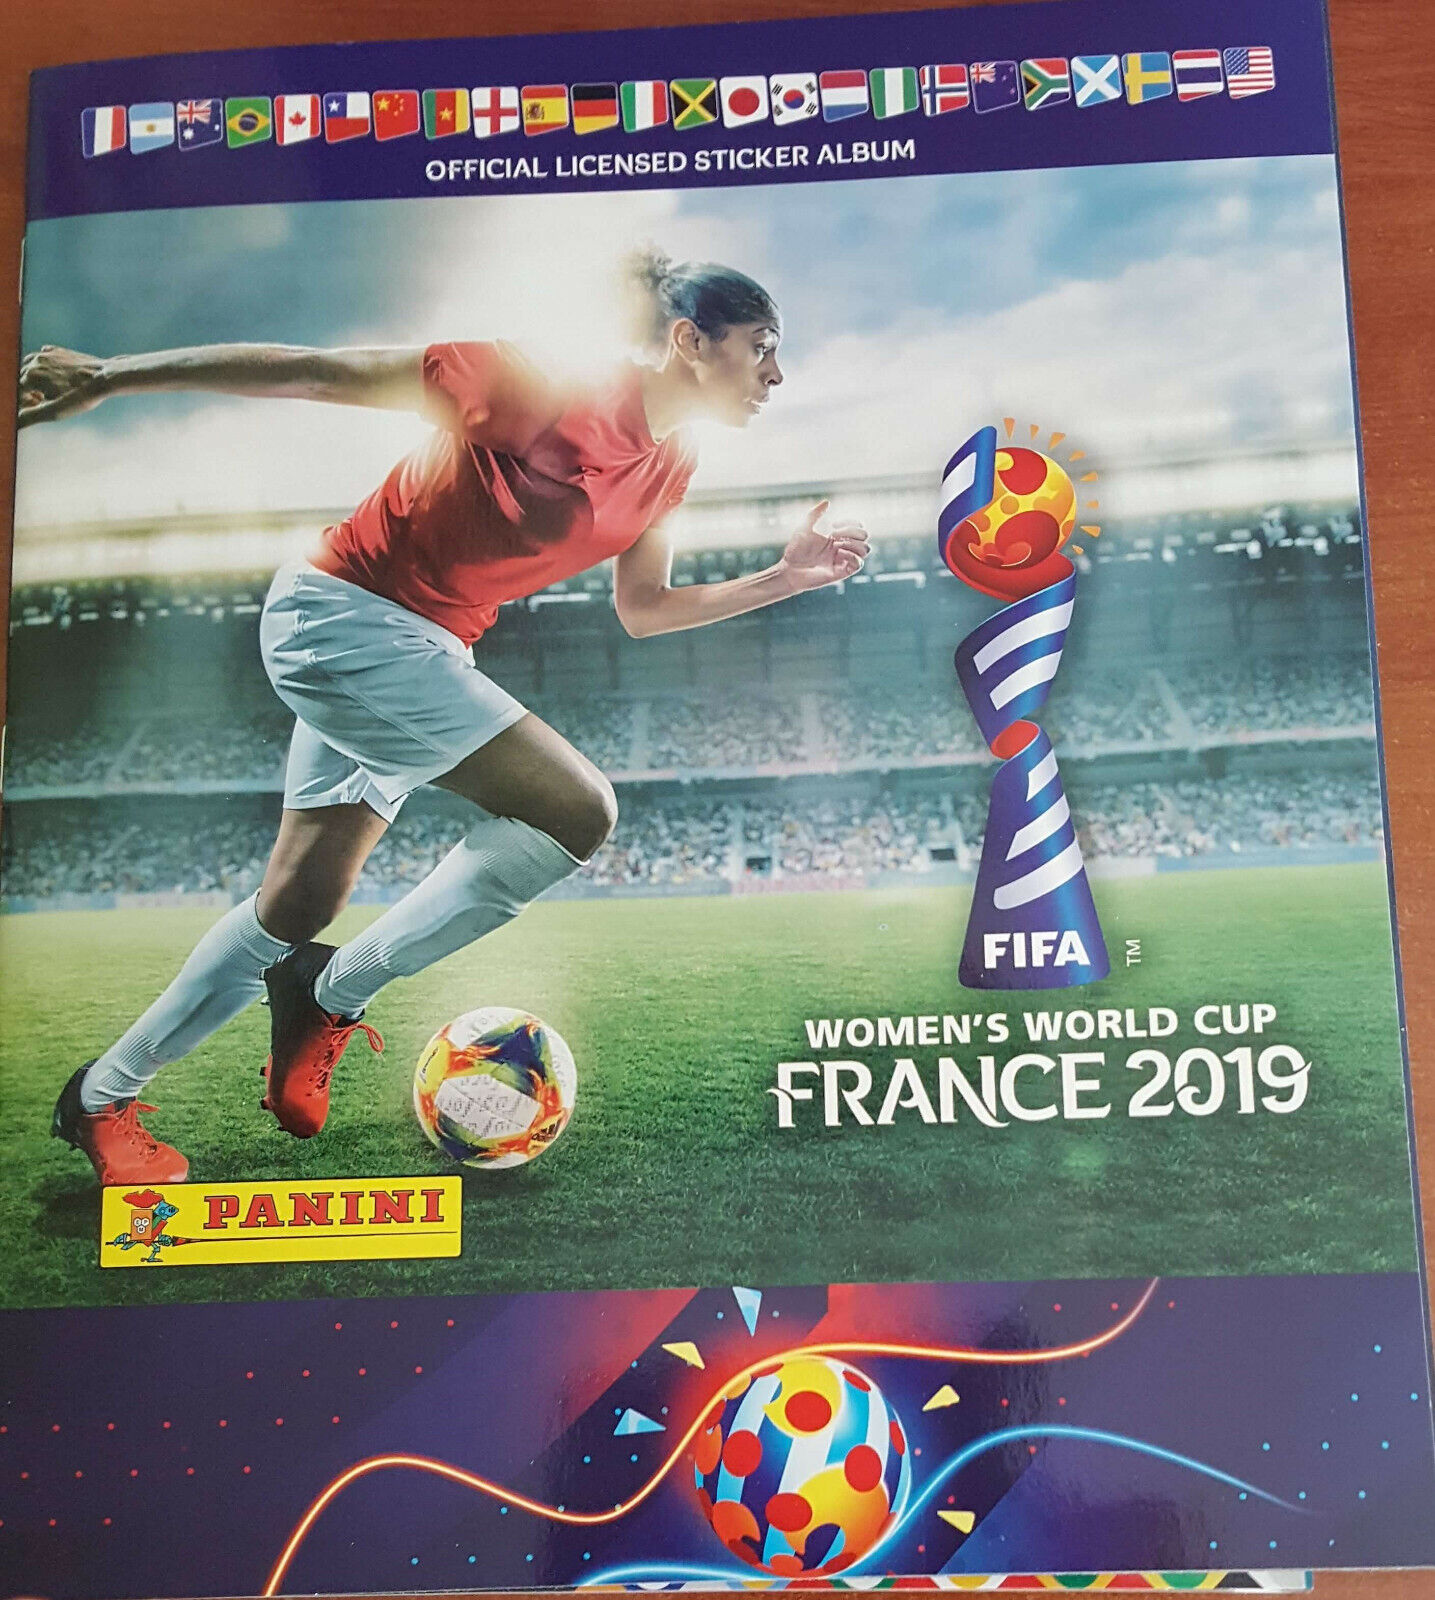 FIFA mujer 'S WORLD CUP FRANCE 2019 - Álbum completo